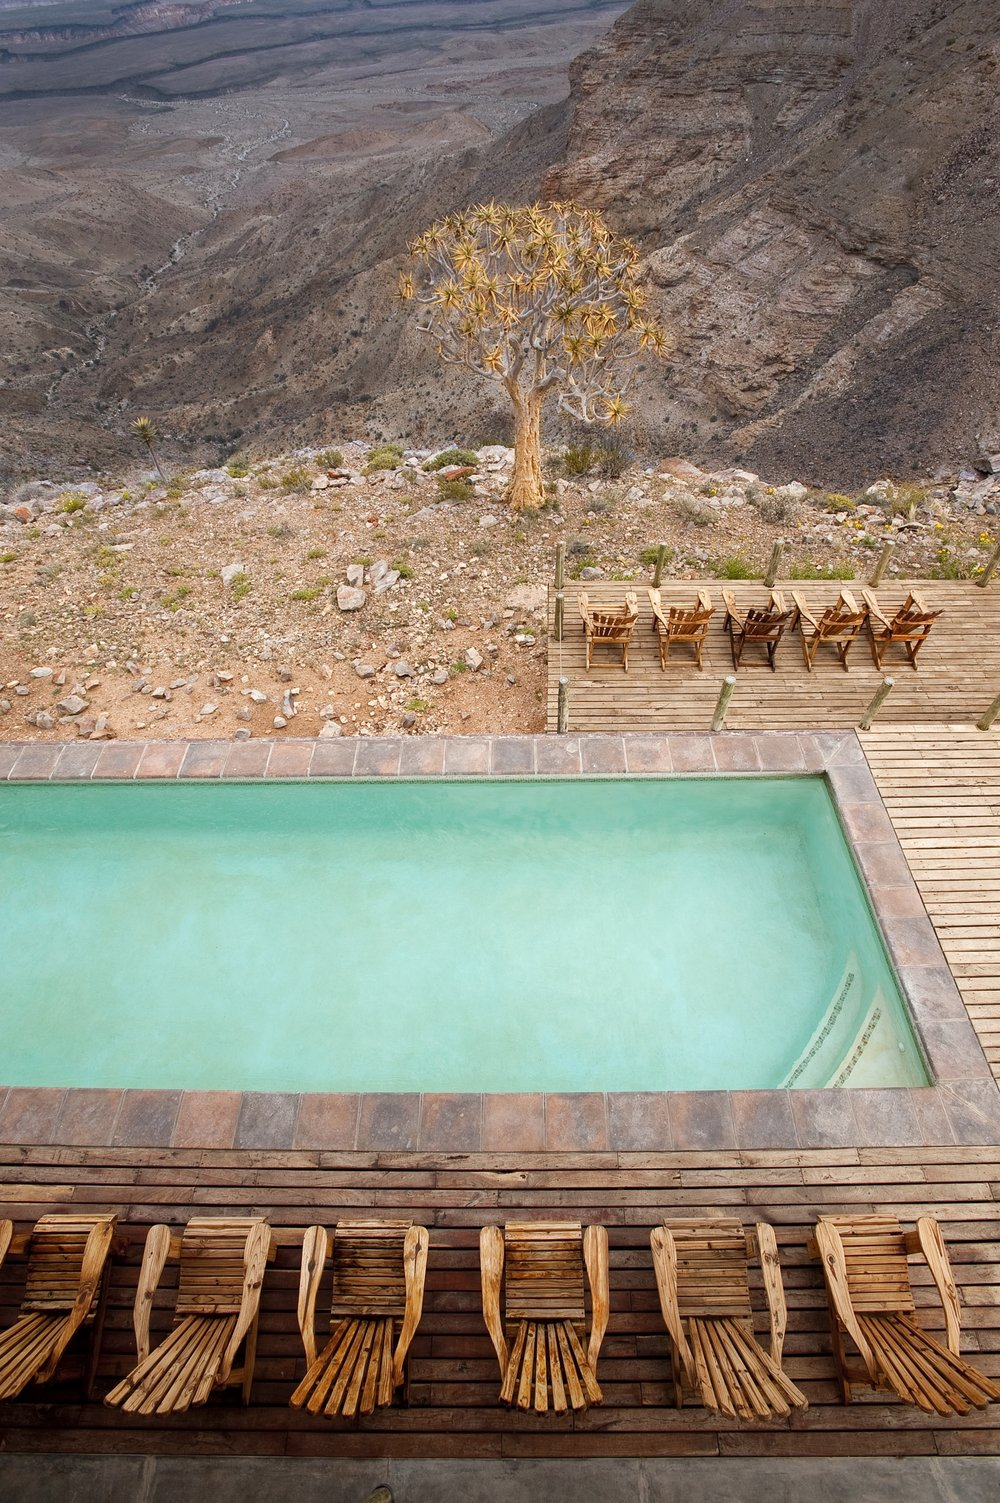 Fish River Lodge Swimming Pool Aerial View.jpg